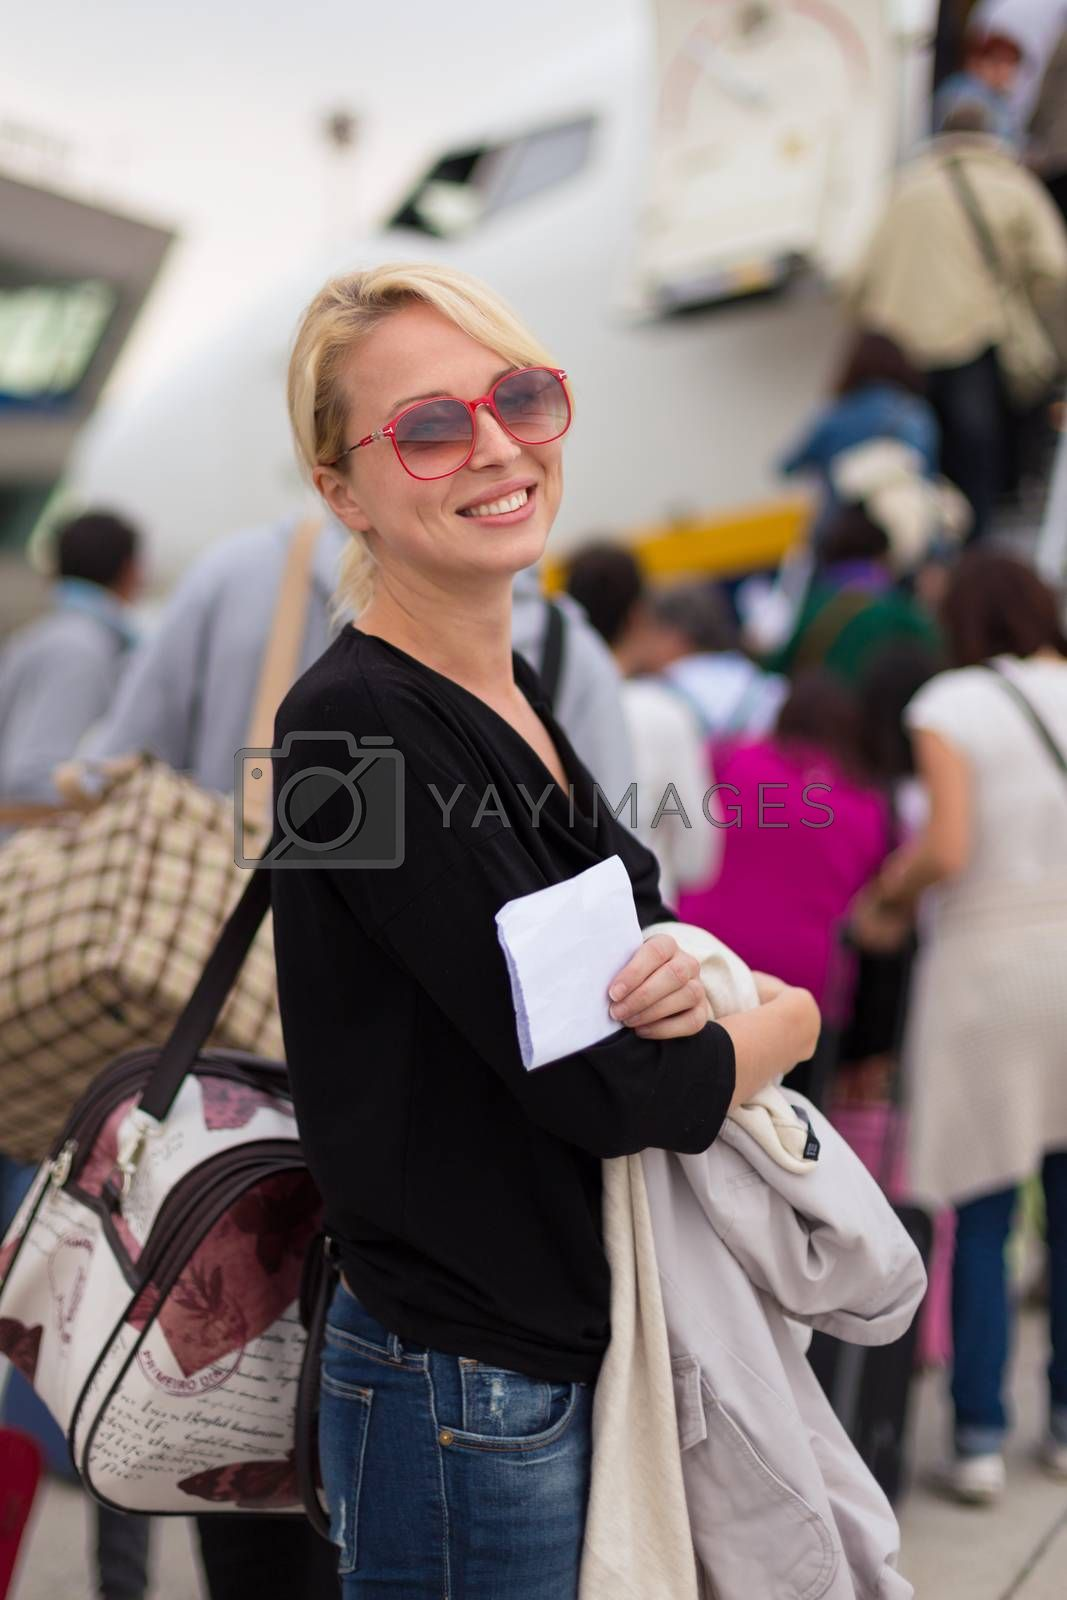 Joyful woman holding carry on luggage queuing to board the commercial airplane.